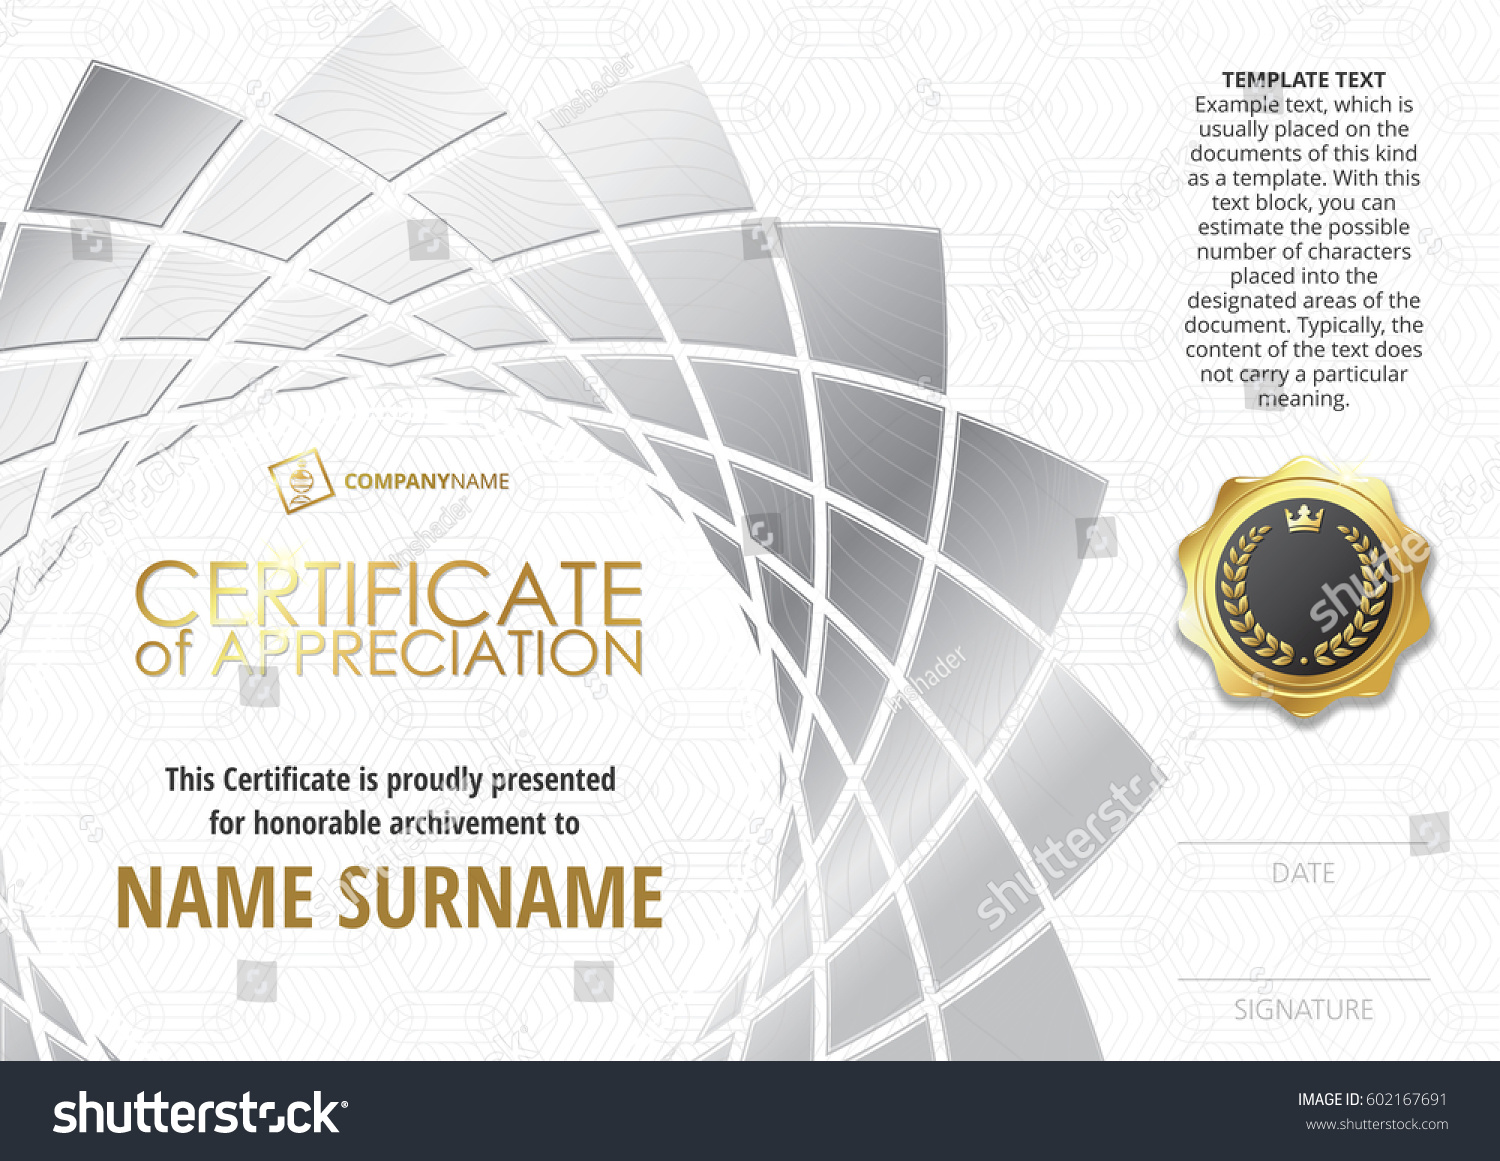 Business certificate templates skipping certificate federal resume business certificate templates skipping certificate medical stock vector template of certificate of appreciation with golden badge yadclub Gallery